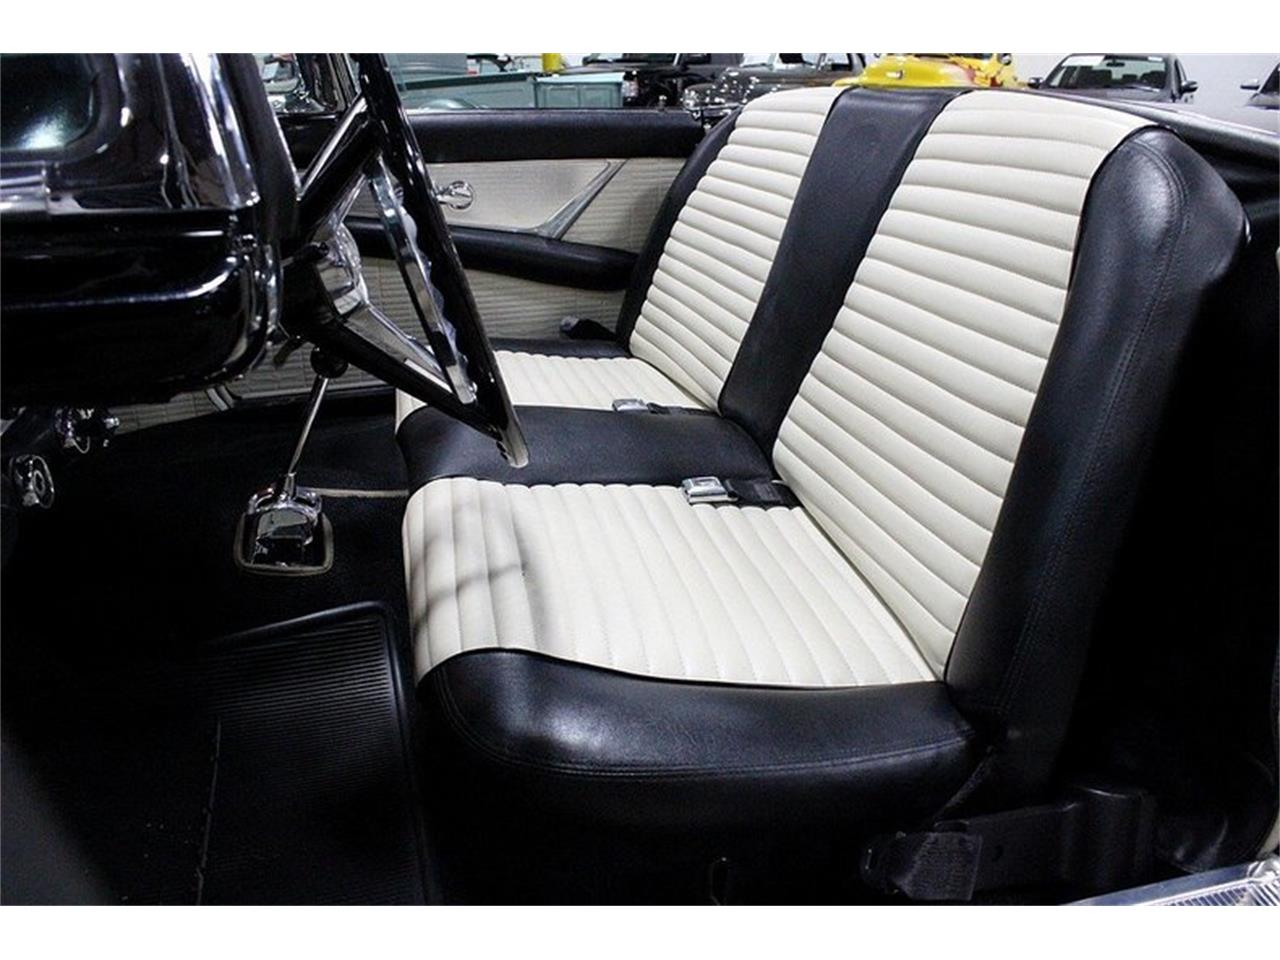 Large Picture of '57 Ford Thunderbird located in Michigan - $72,900.00 - KPV7